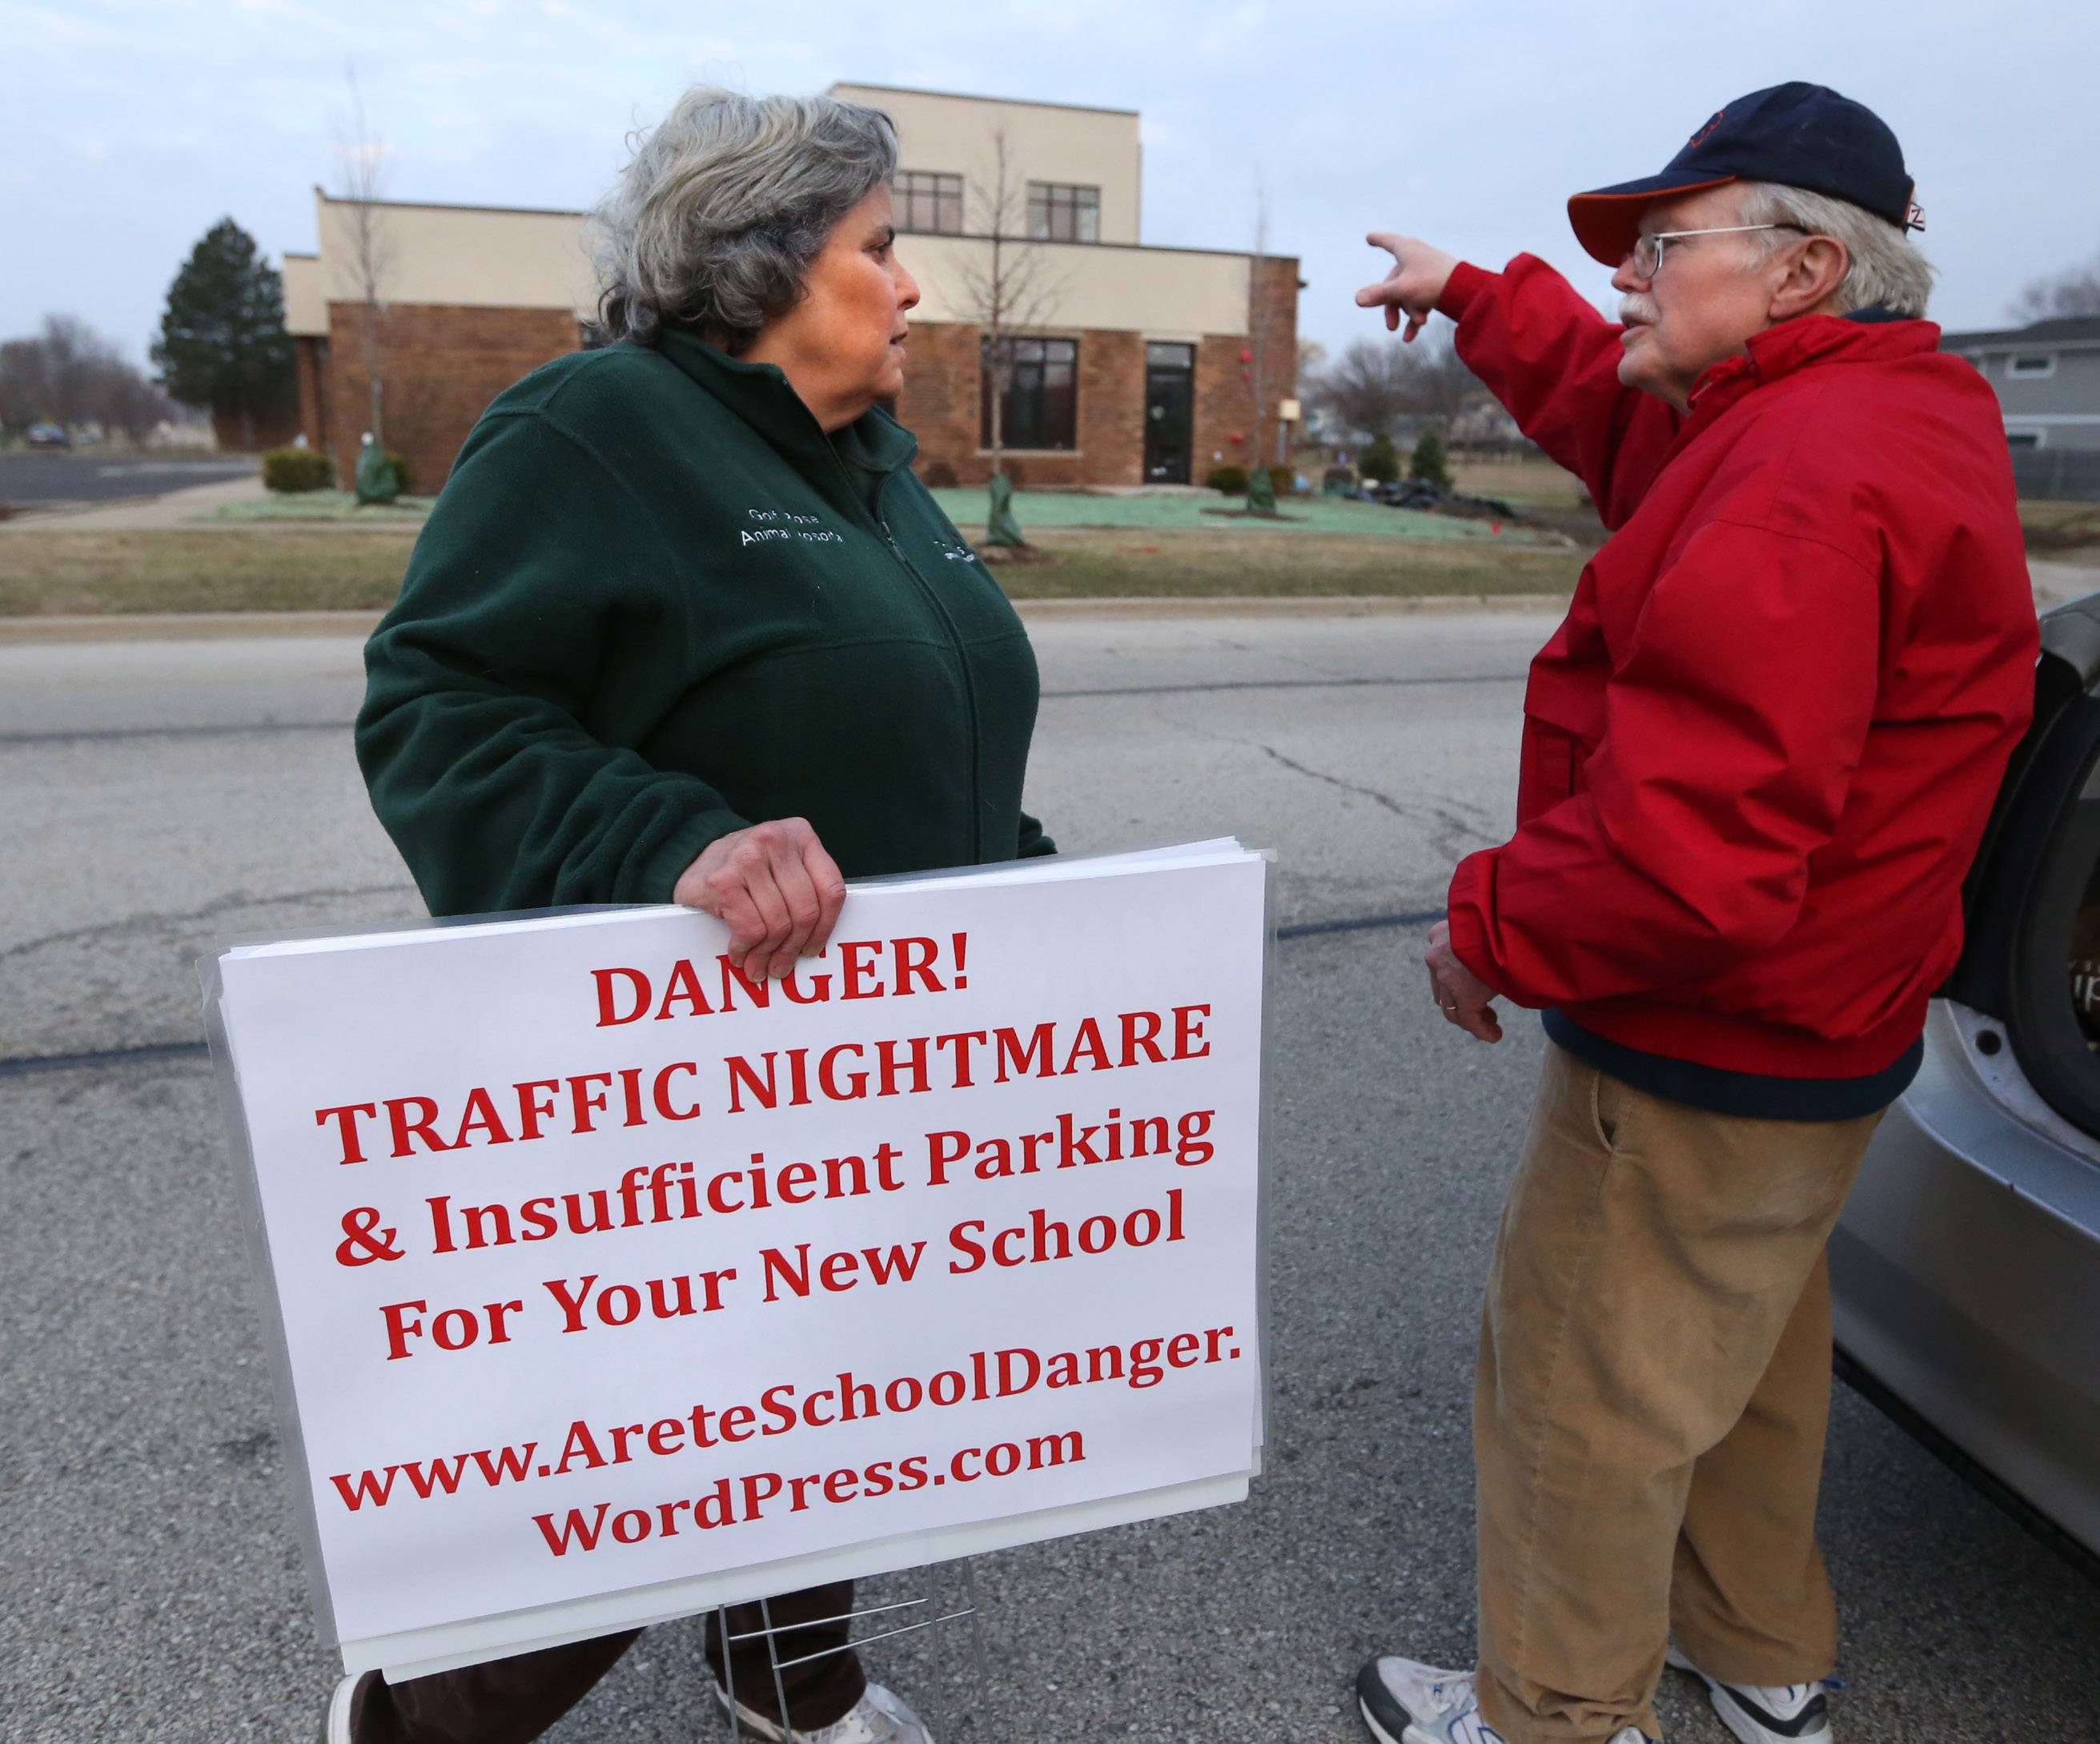 Bob Bacon and his wife Karen Hailpern, of unincorporated Cook County, prepare to place signs around Montessori School in Hoffman Estates for an informational picket on Tuesday about the owner's plans to add another location at a site picketers don't approve of.